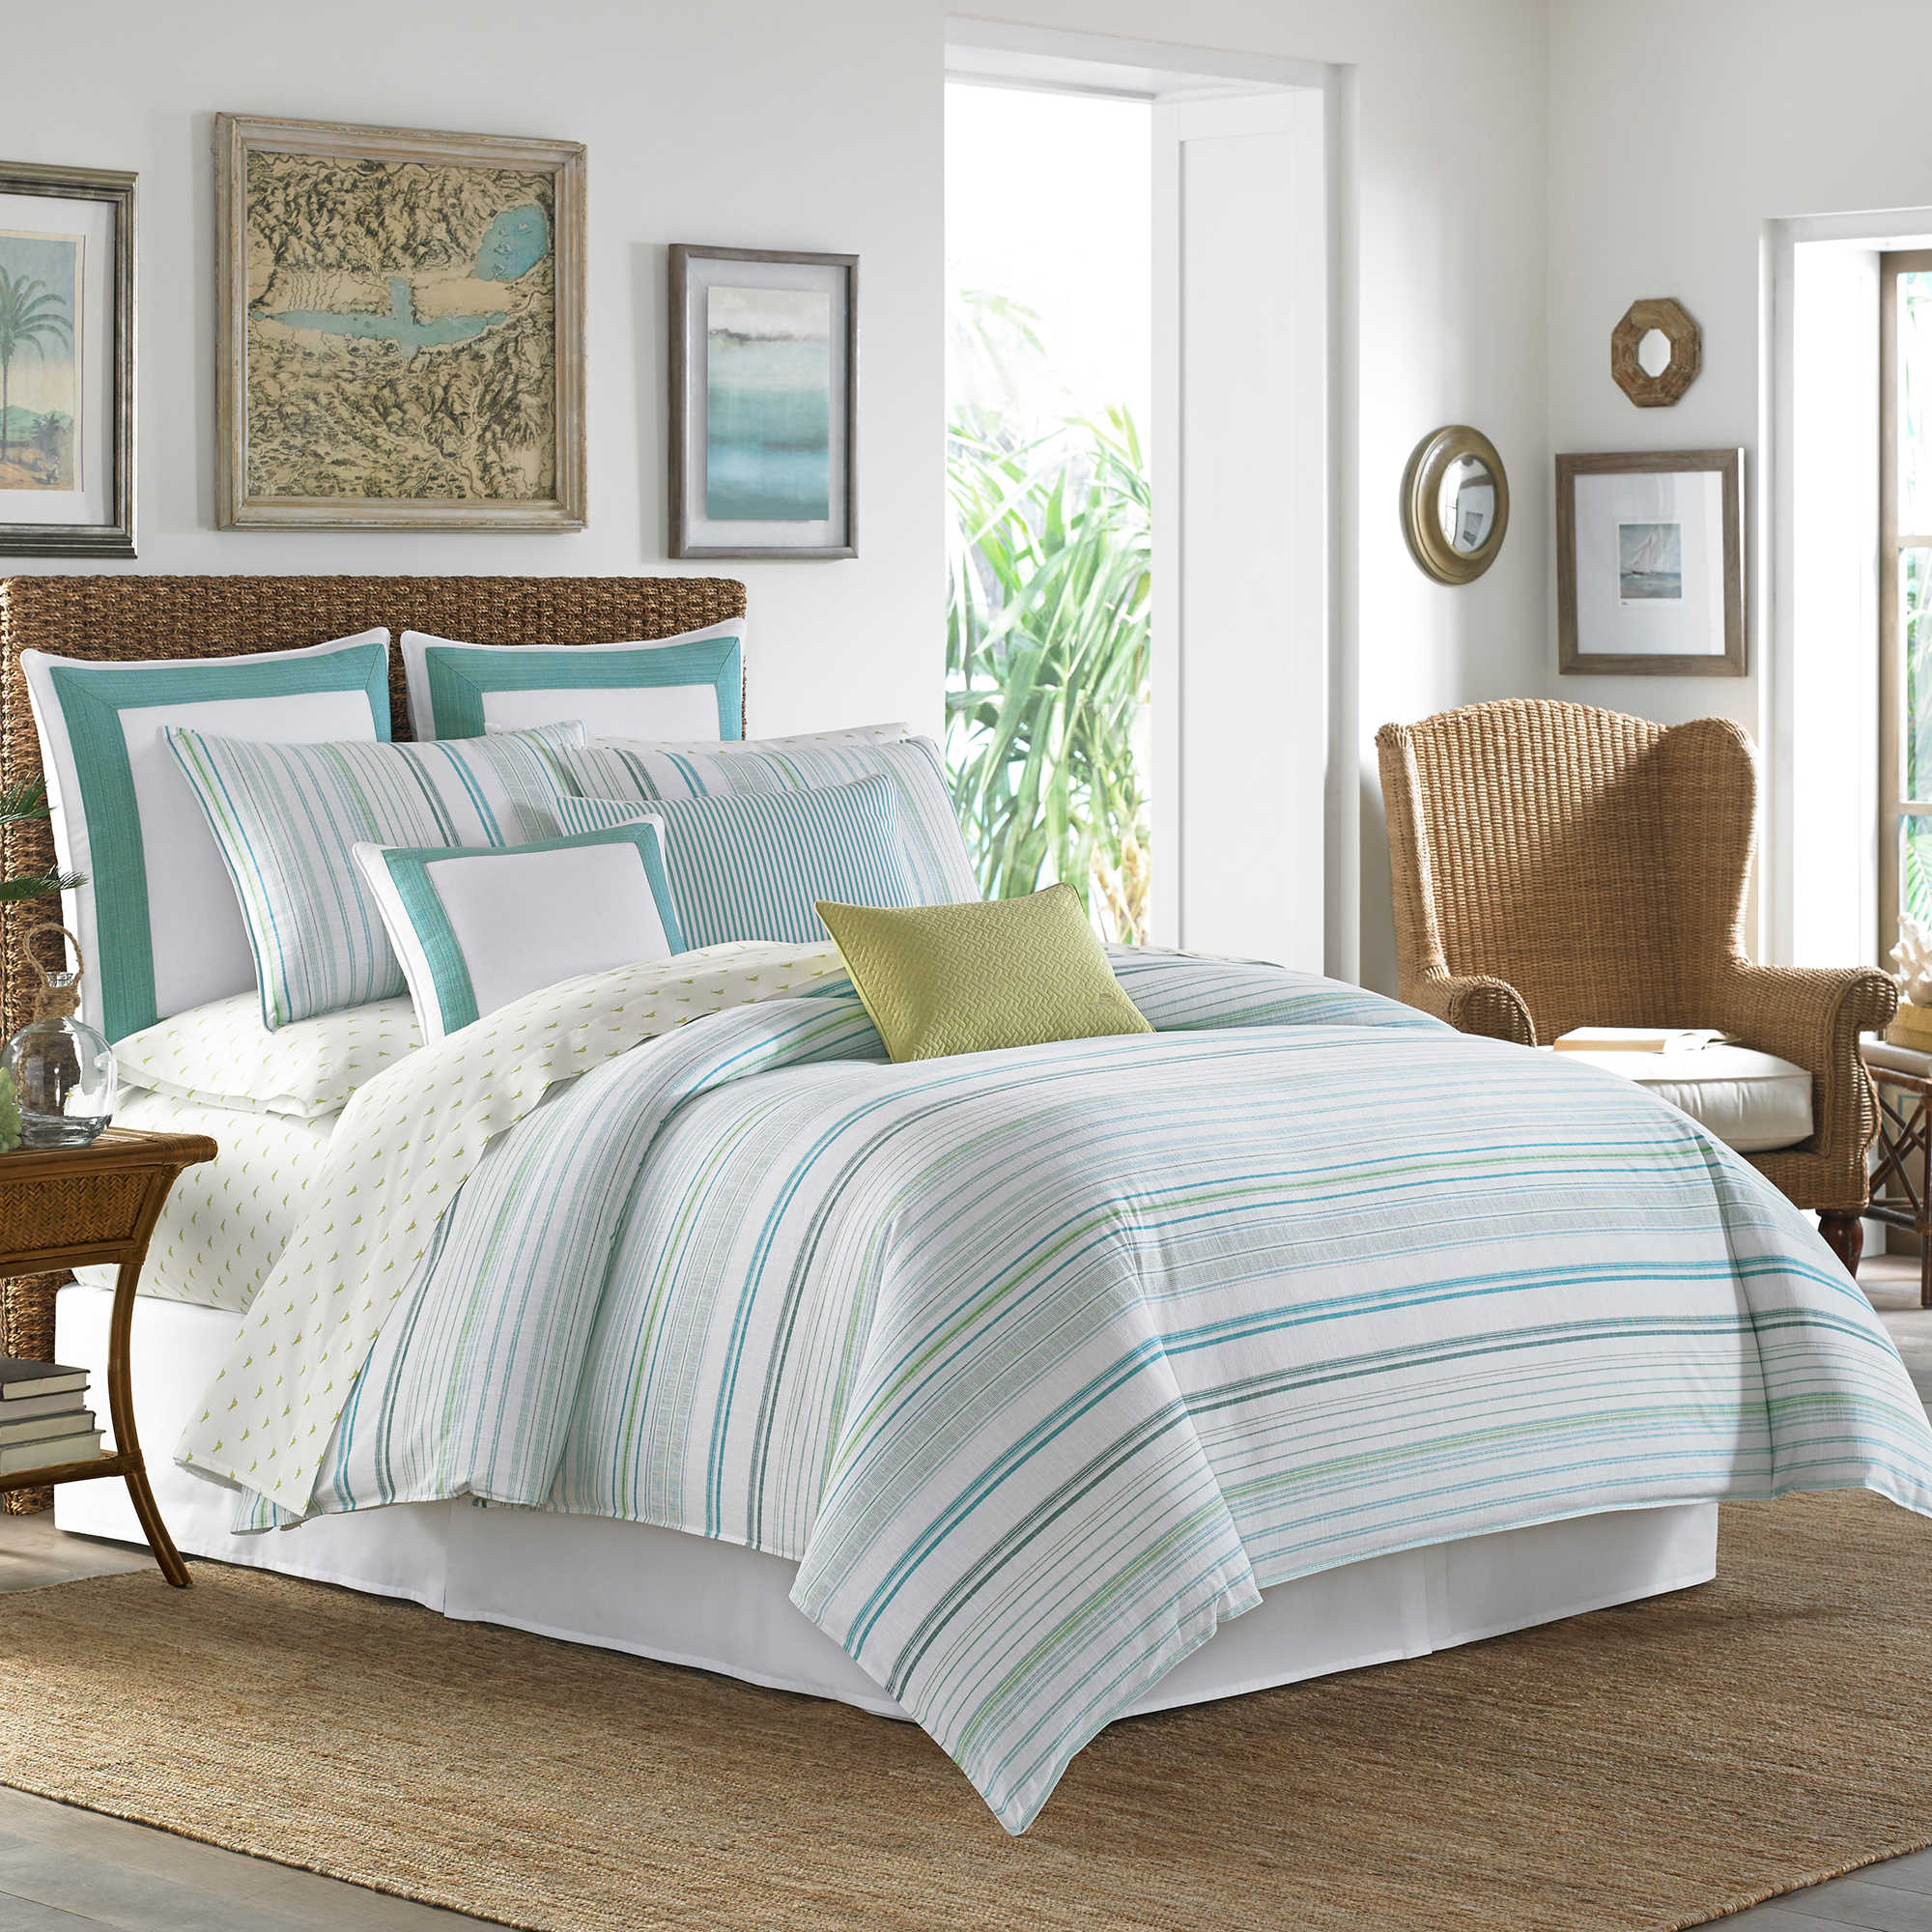 stupendous brown california bedding quilt navy beddings blue teal more set galapagos king sets light style size stirring photos ease comforter sizedding with cheap